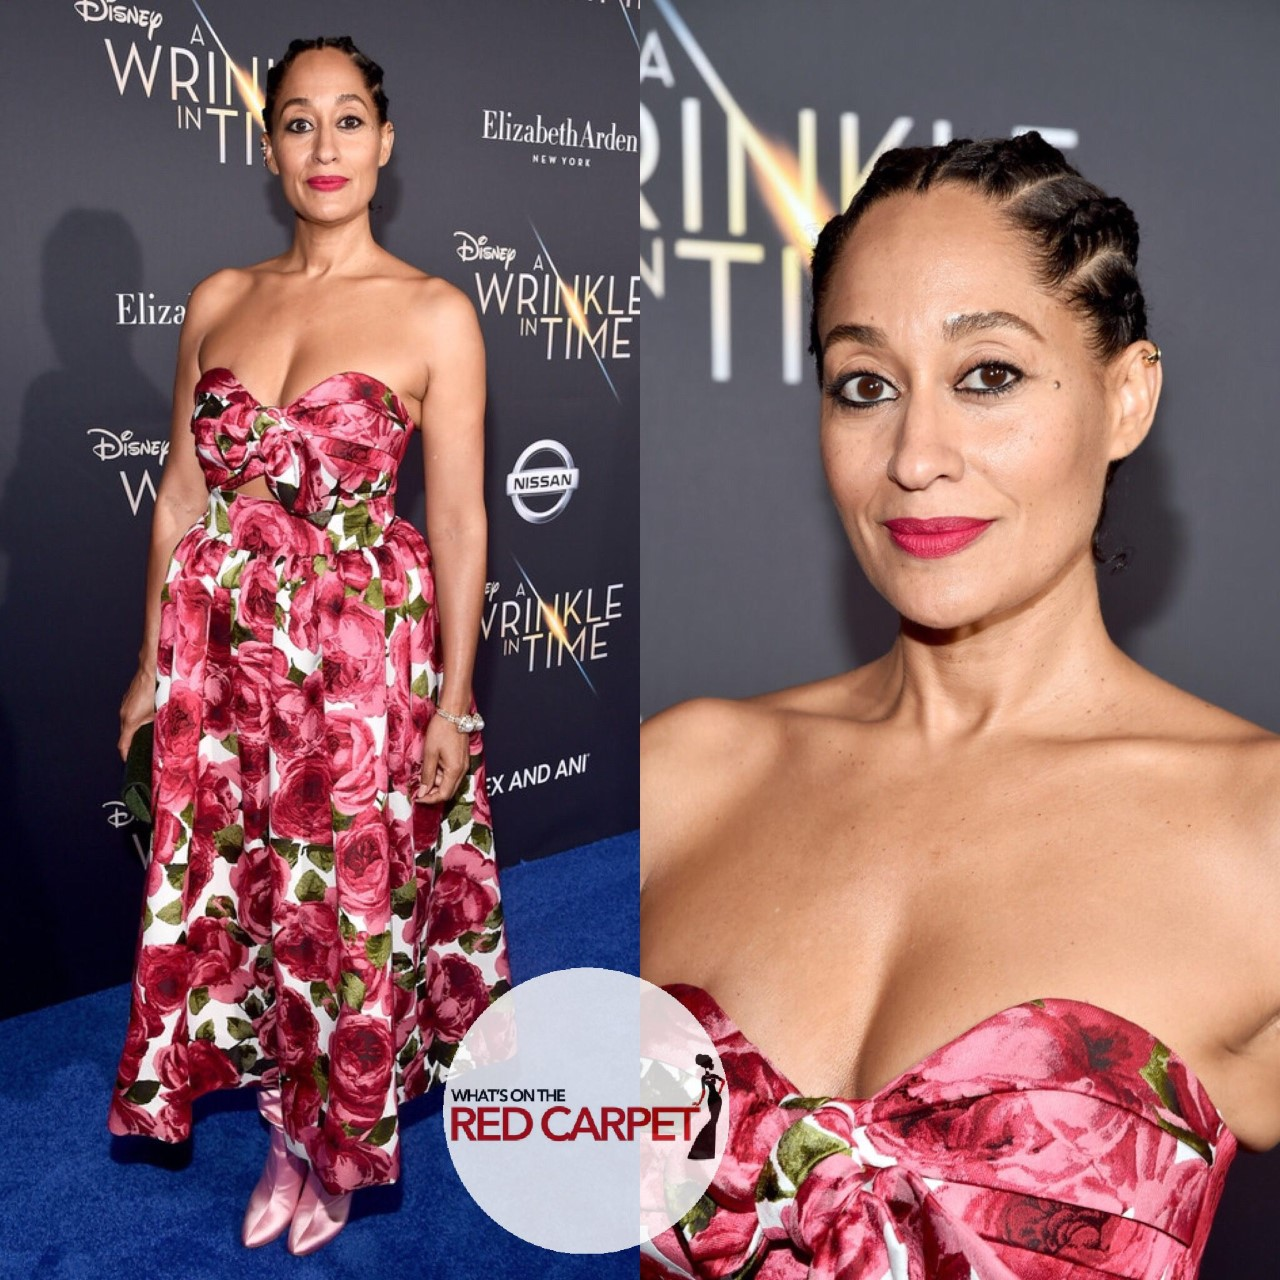 tracee ellis ross Michael kors a wrinkle in time Los Angeles premiere fashion style